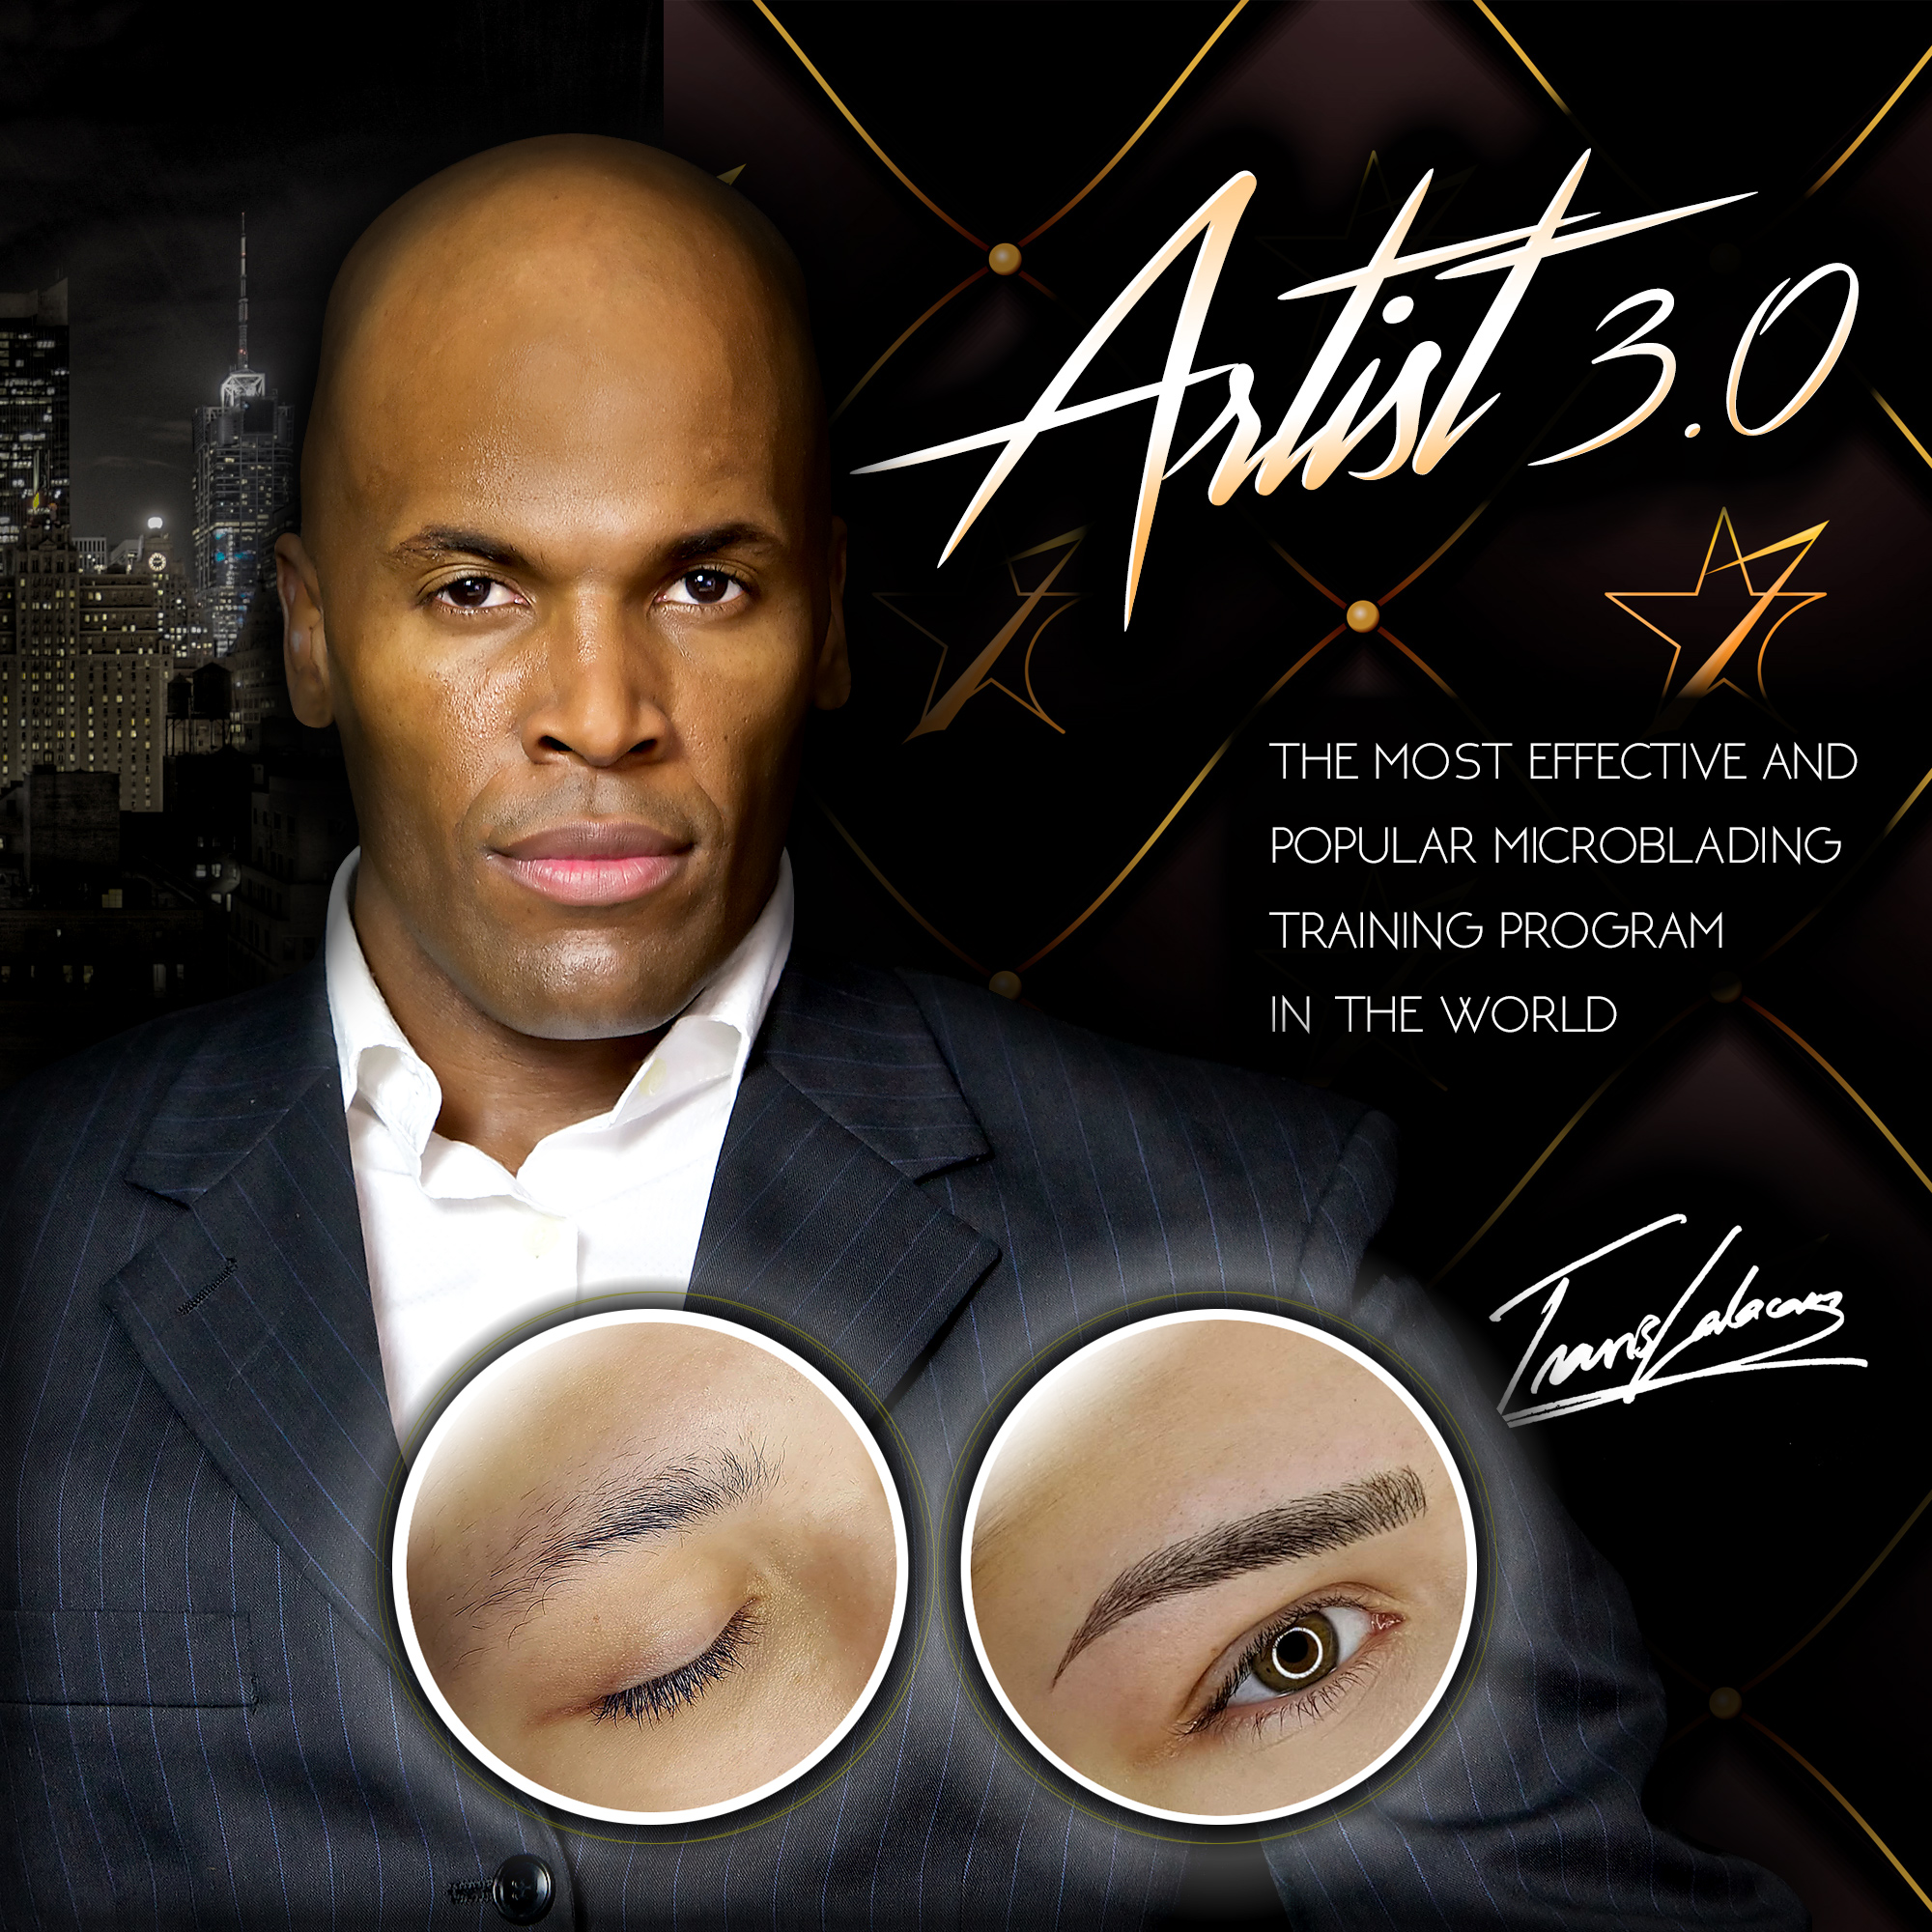 Artist 3.0 program is the most advanced and effective way to learn Light microblading, that is the newest and best microblading technique. More than 3000+ students can't be wrong!    Light microblading - Certainly the largest change in the world of microblading.  Compared to conventional approach Light microblading means that much less pressure is applied when cuts are made to insert the pigment into skin. Due to that a larger amount of phases is needed - however, the duration of the process is cut shorter applying pigment and anaesthetics at the same time. Brows made with Light microblading have the following concrete advantages:  - Lines are sharper, thinner and more precise. - The retention of the pigments is much better.  - The end result is absolutely natural (even from a very close distance).  When it comes to Light microblading very sharp u-blades are used to insert pigment into skin over the course of much higher number of phases than with conventional method. As a result of that the risk that the blade would penetrate too deep is eliminated. In addition to that the amount of pain and unpleasant feeling for the client is much smaller, as well as there is practically no blood. Anaesthetics is used only for clearing the upper layers of the skin from blood (as it also presses blood deeper into skin) and dramatically less for its' pain reducing effect. Price of the training (1 year access to platform): 499€.